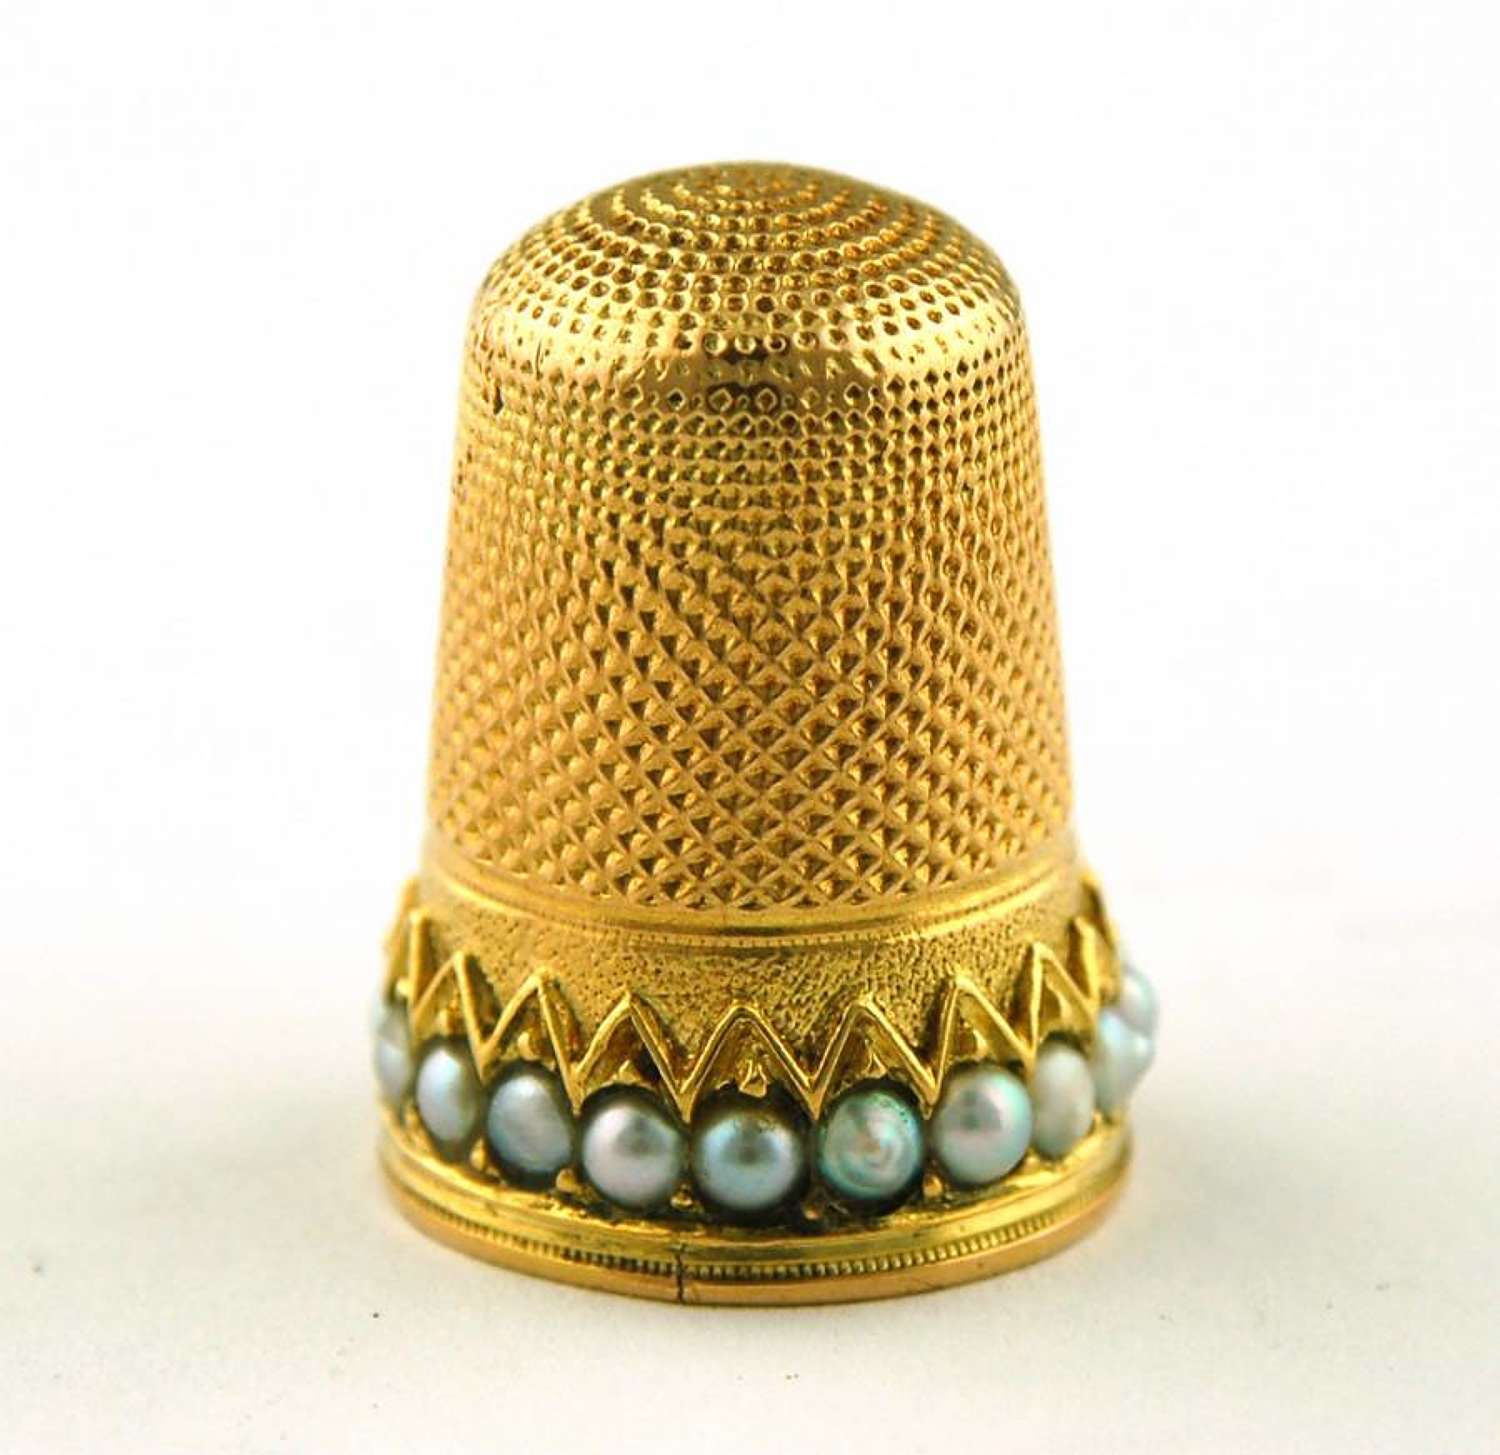 Gold and Pearl Thimble